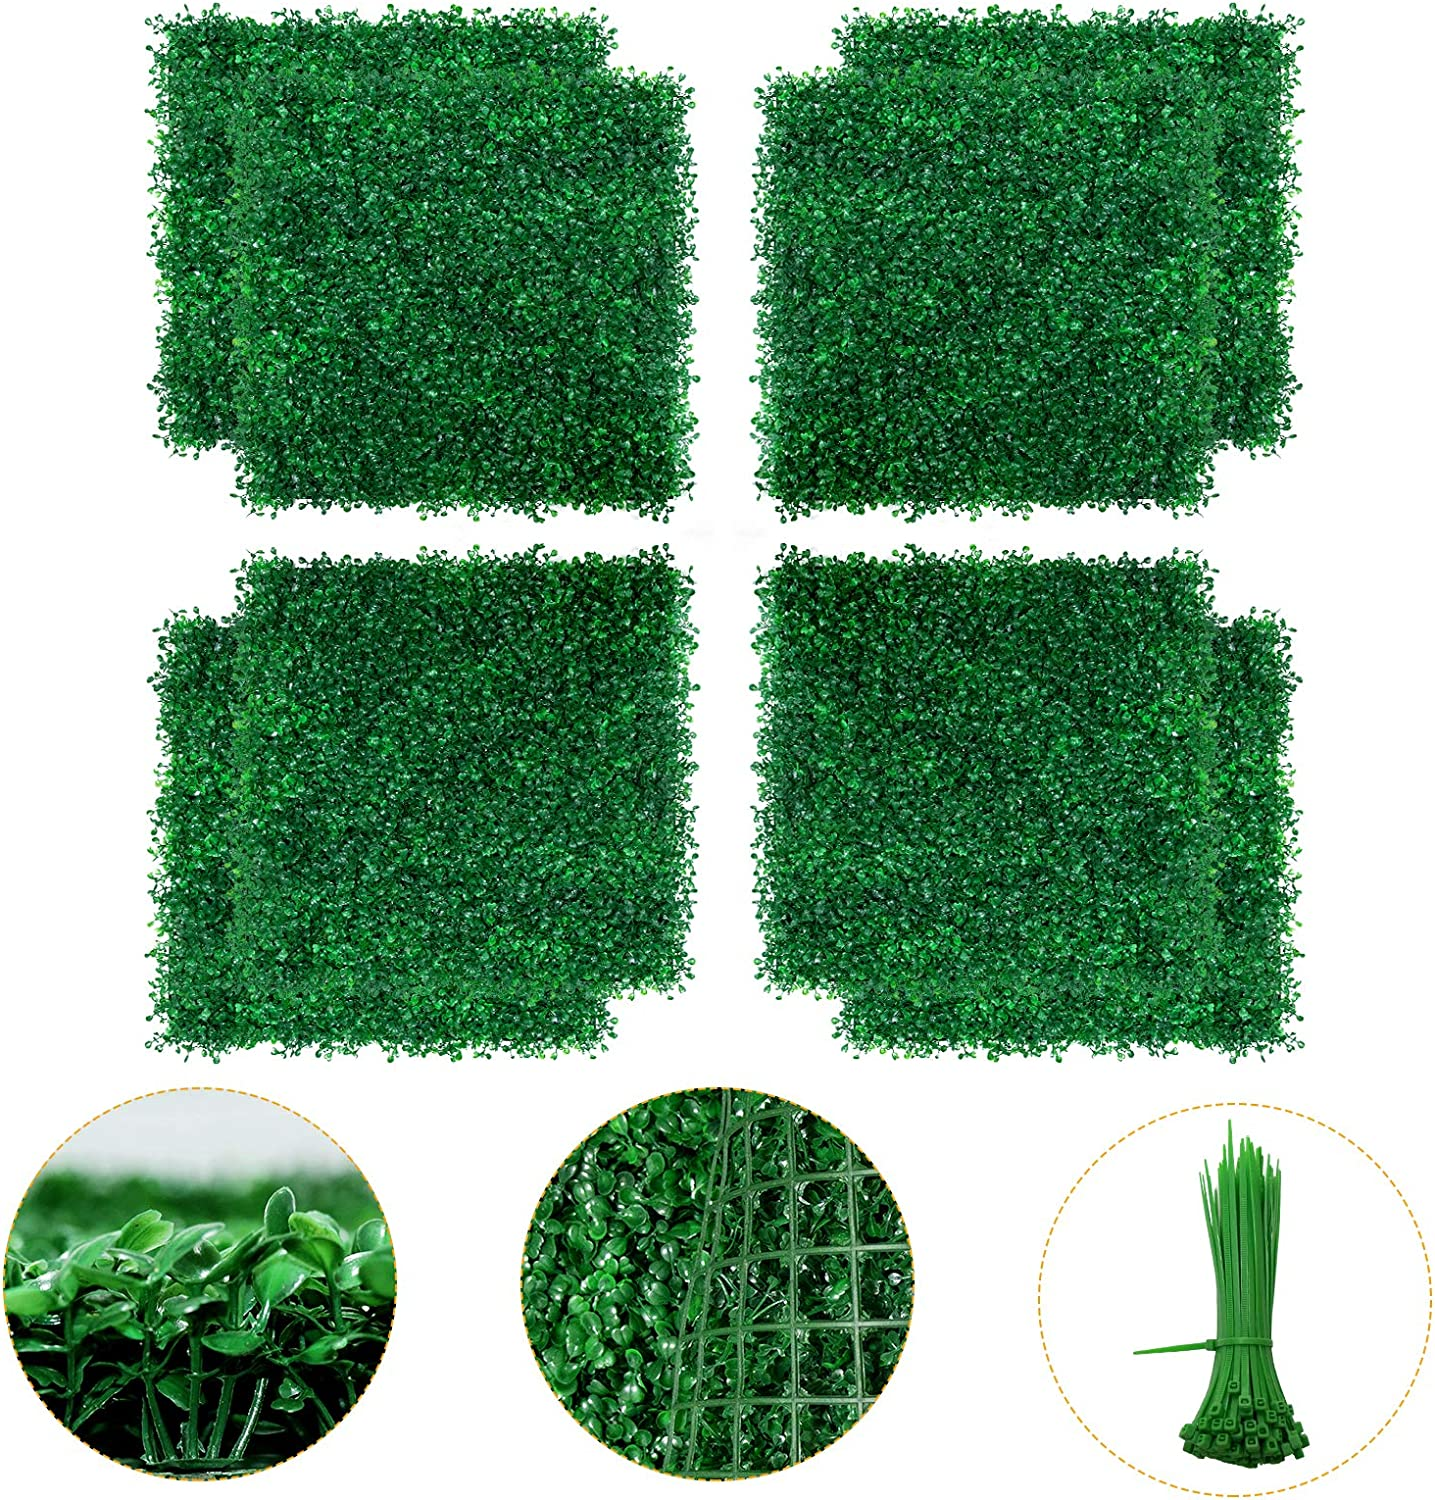 Boxwood Panel - 8PCS Artificial Boxwood Hedge Wall Panels, Faux Greenery Boxwood Hedge Mat for Indoor Wall Decor, 20 x 20 Inch Artificial Greenery Panels as Garden Fence Screen for Outdoor Decor